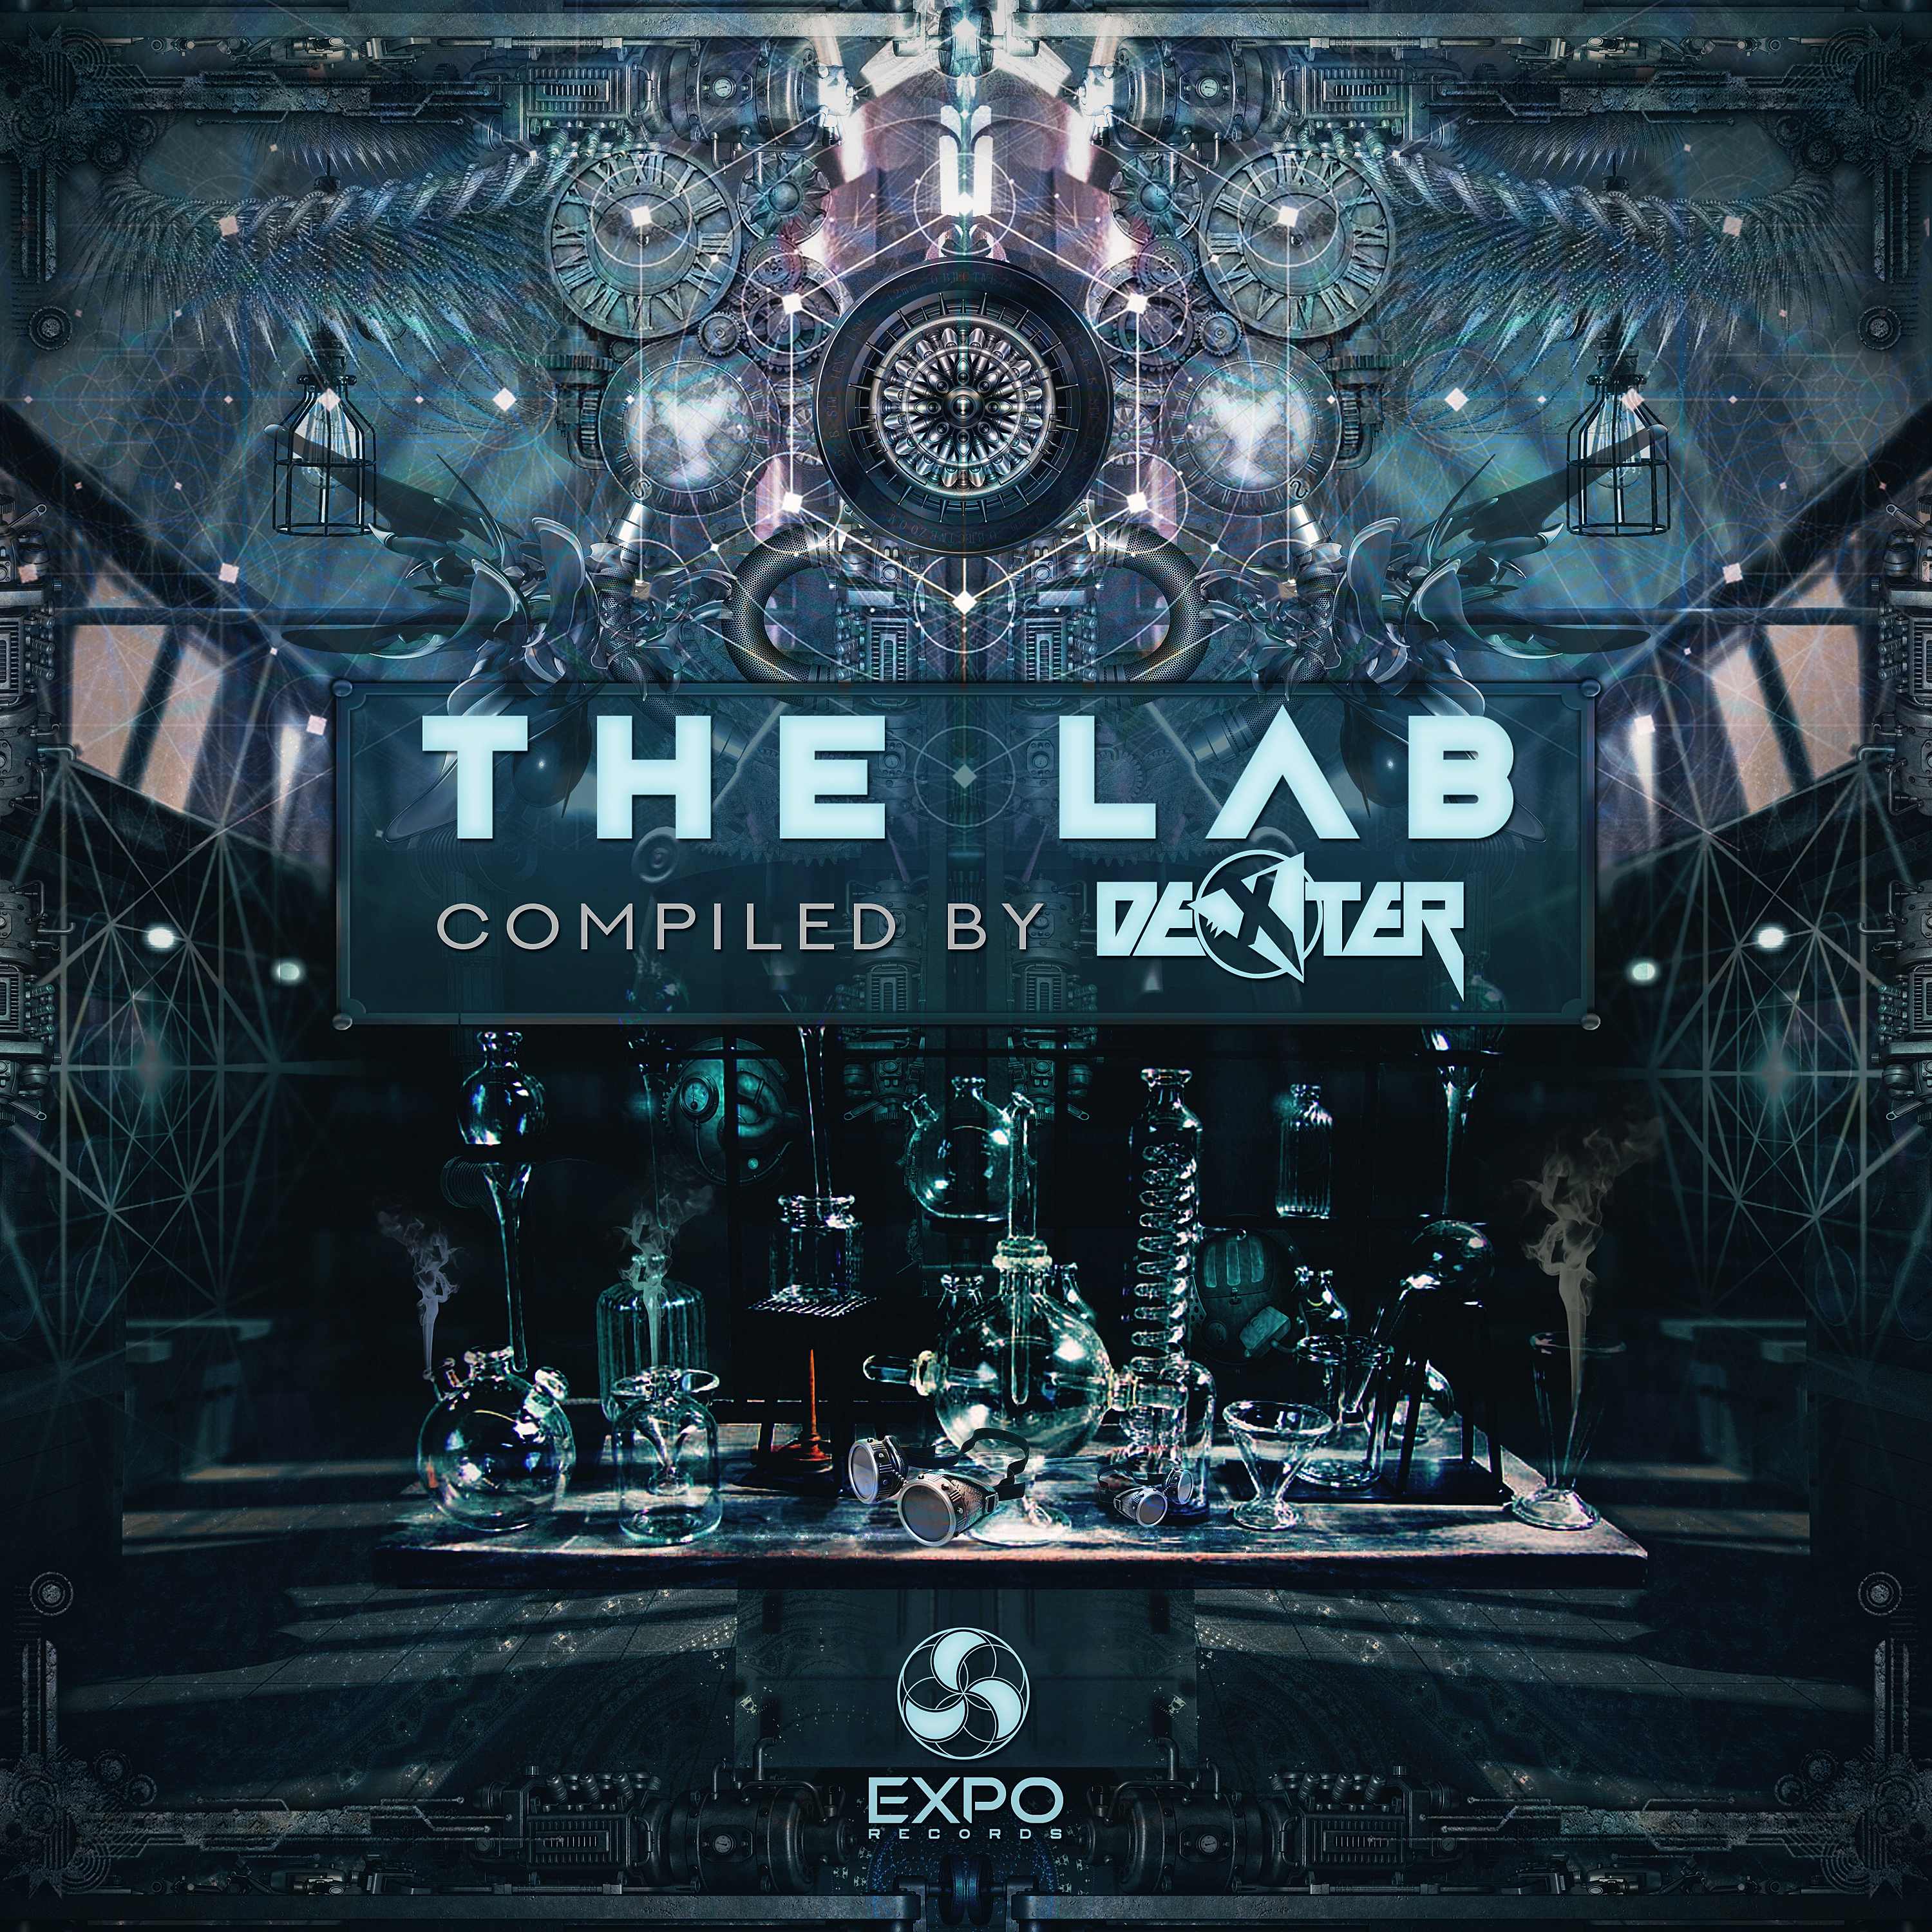 The Lab V/A compiled by Dexter